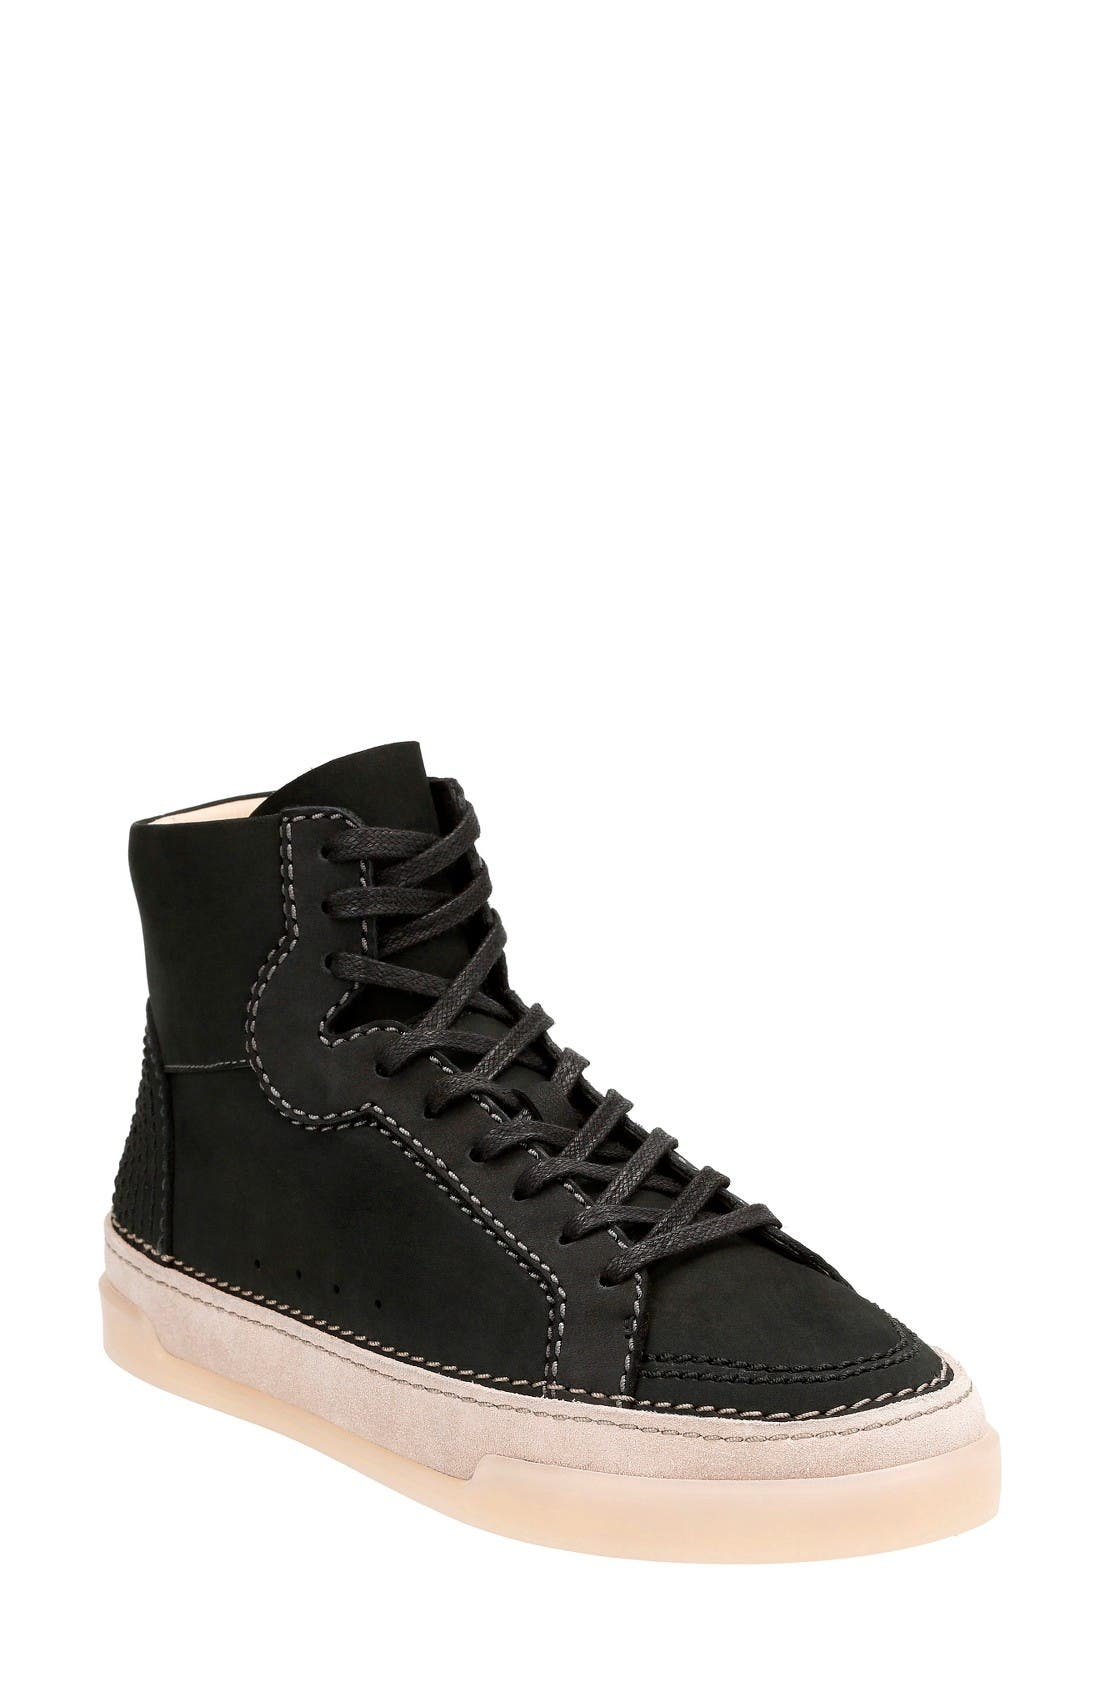 Main Image - Clarks® Hidi Haze High Top Sneaker (Women)